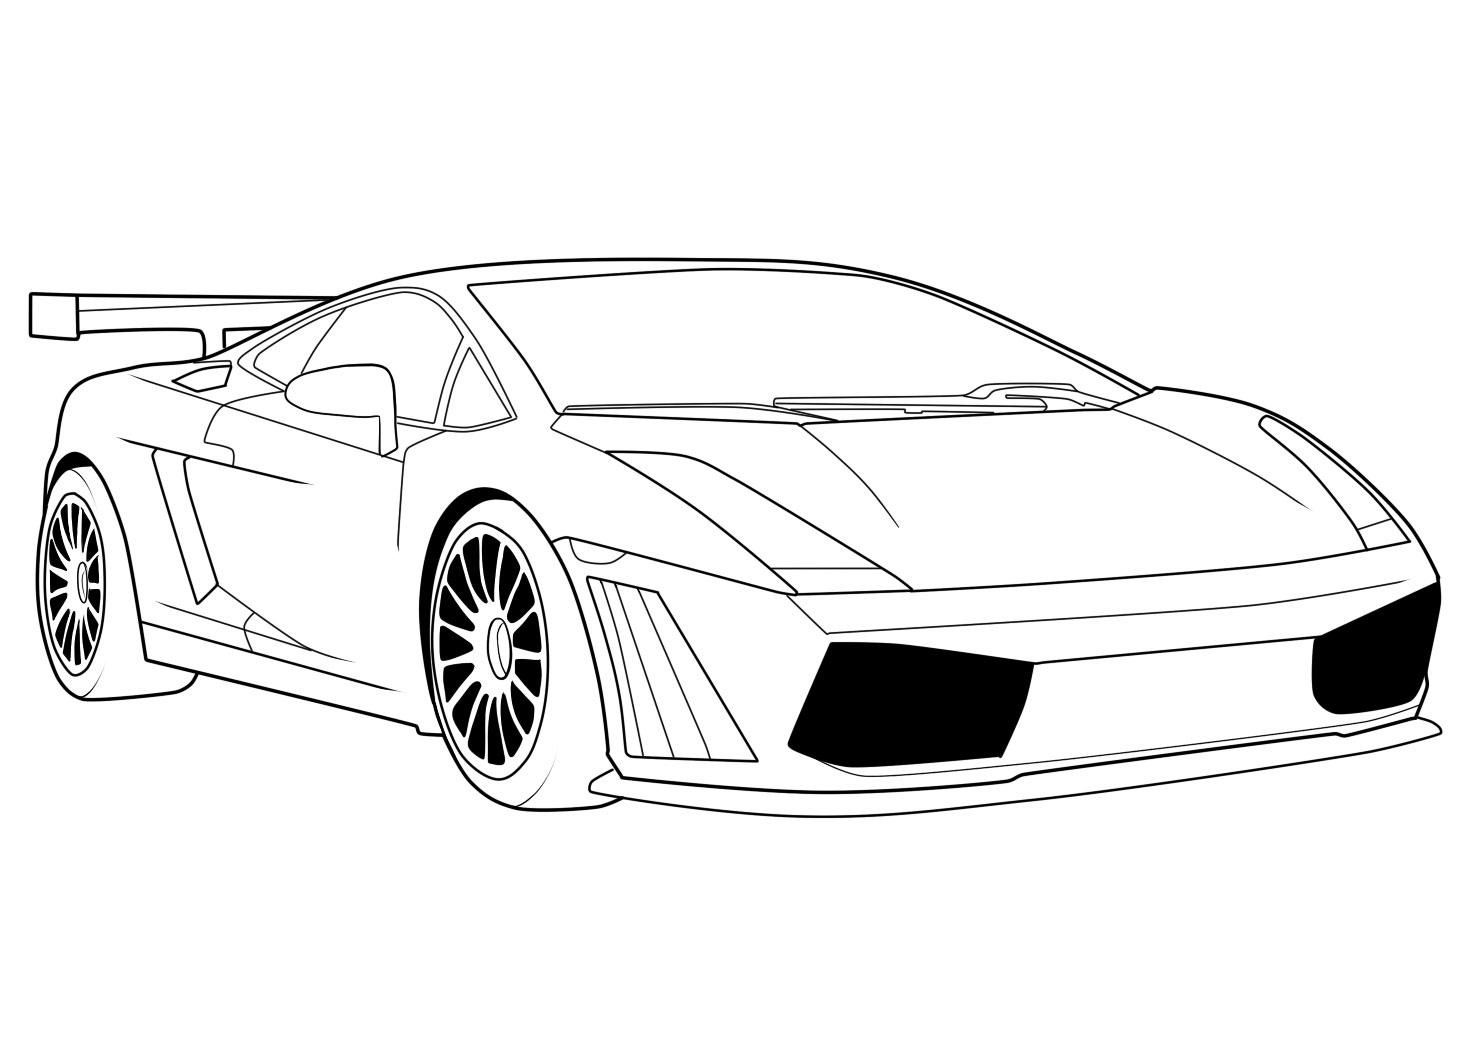 car colouring pages 4 disney cars free printable coloring pages colouring car pages